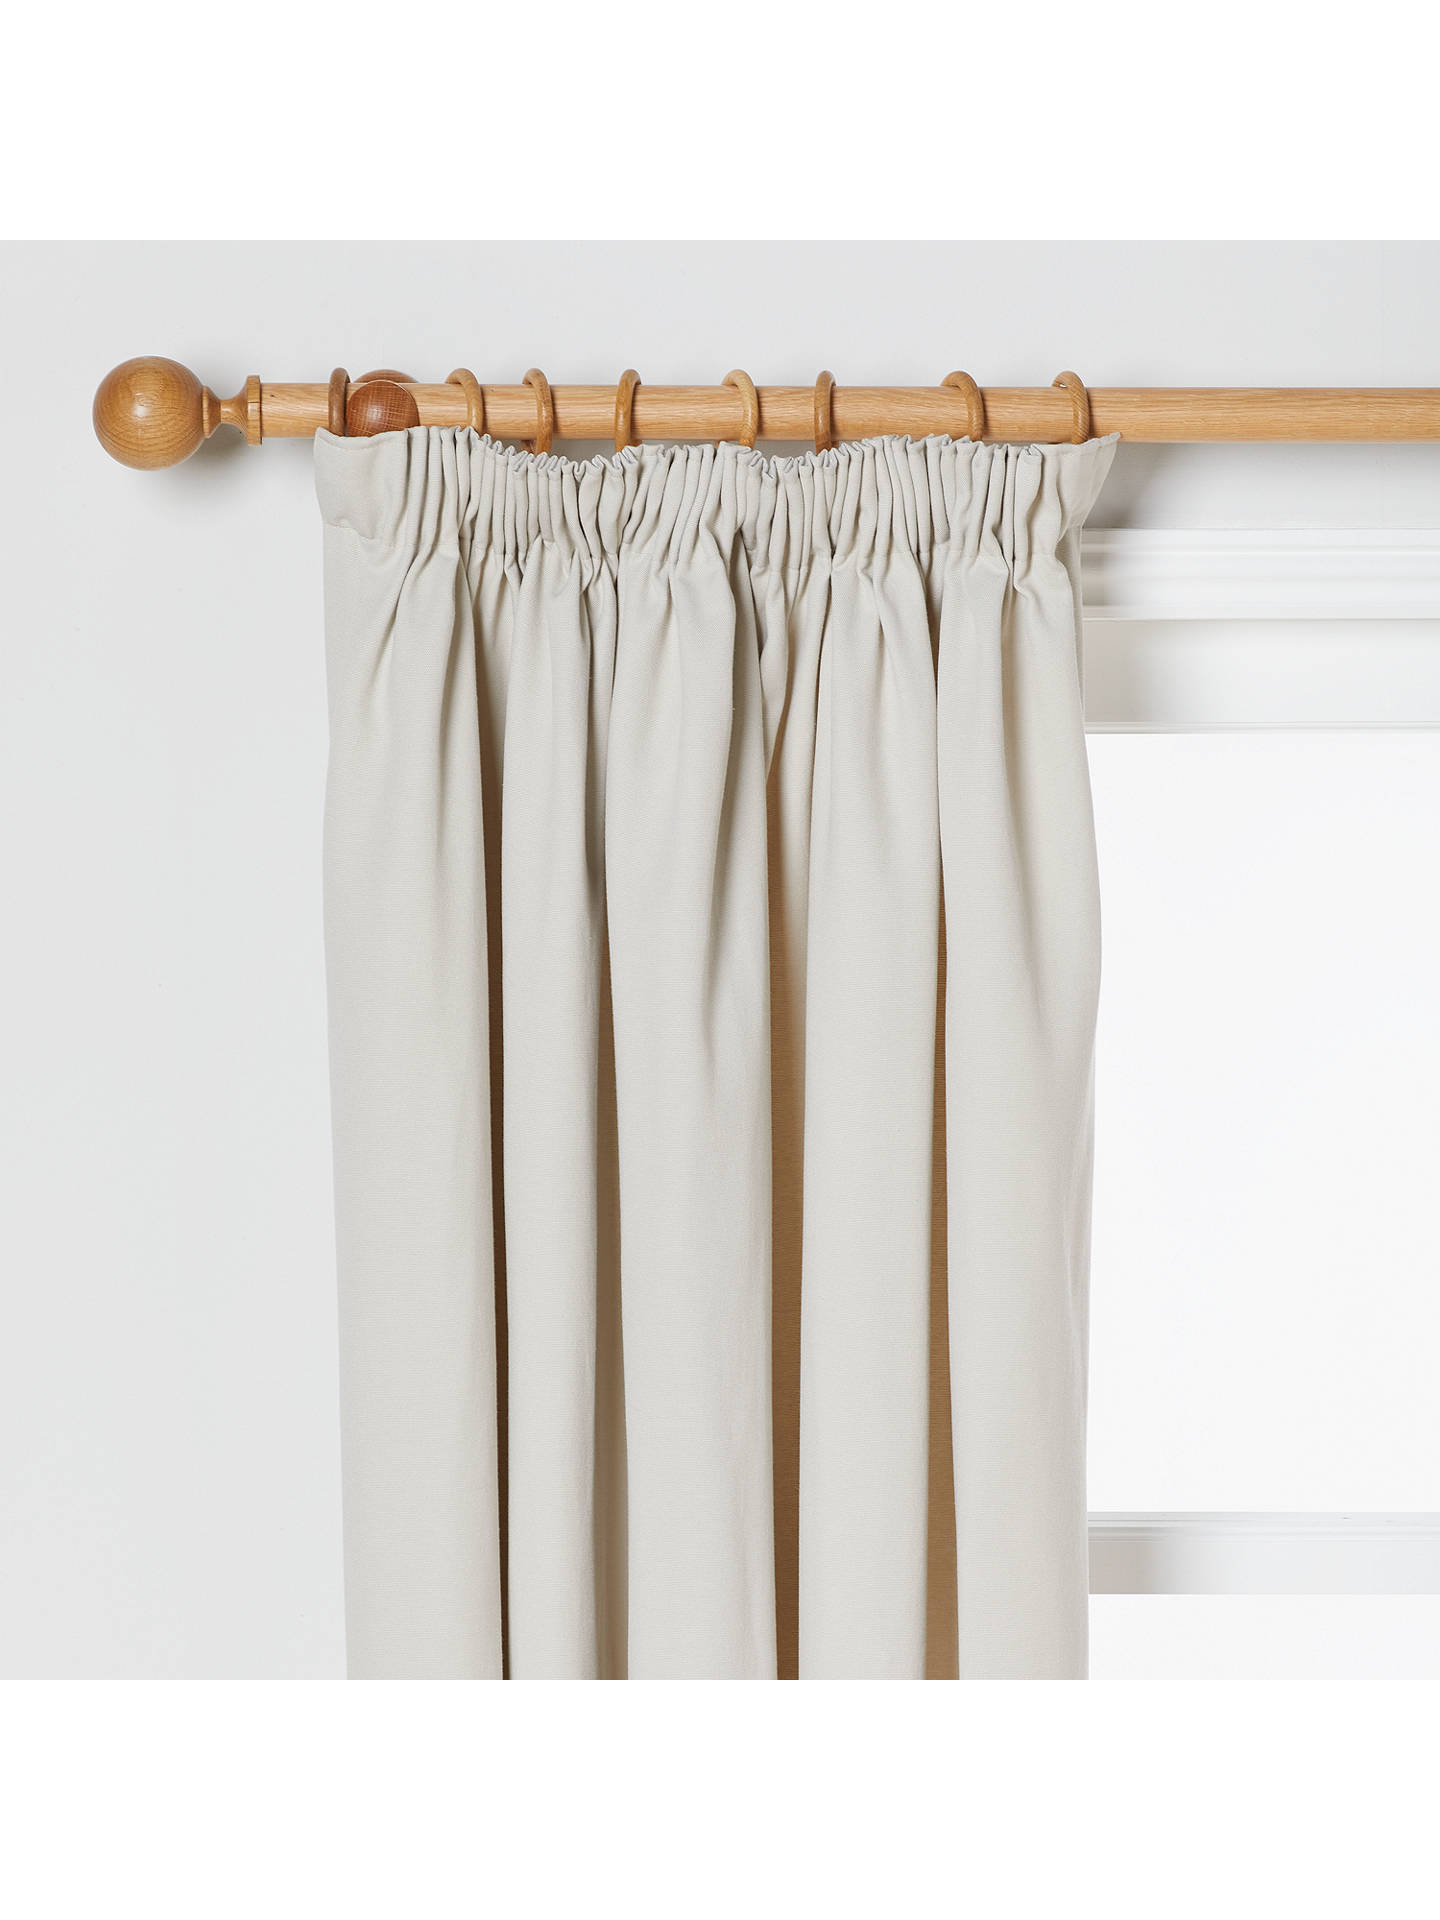 BuyJohn Lewis & Partners Arlo Pair Lined Pencil Pleat Curtains, Putty, W167 x Drop 137cm Online at johnlewis.com